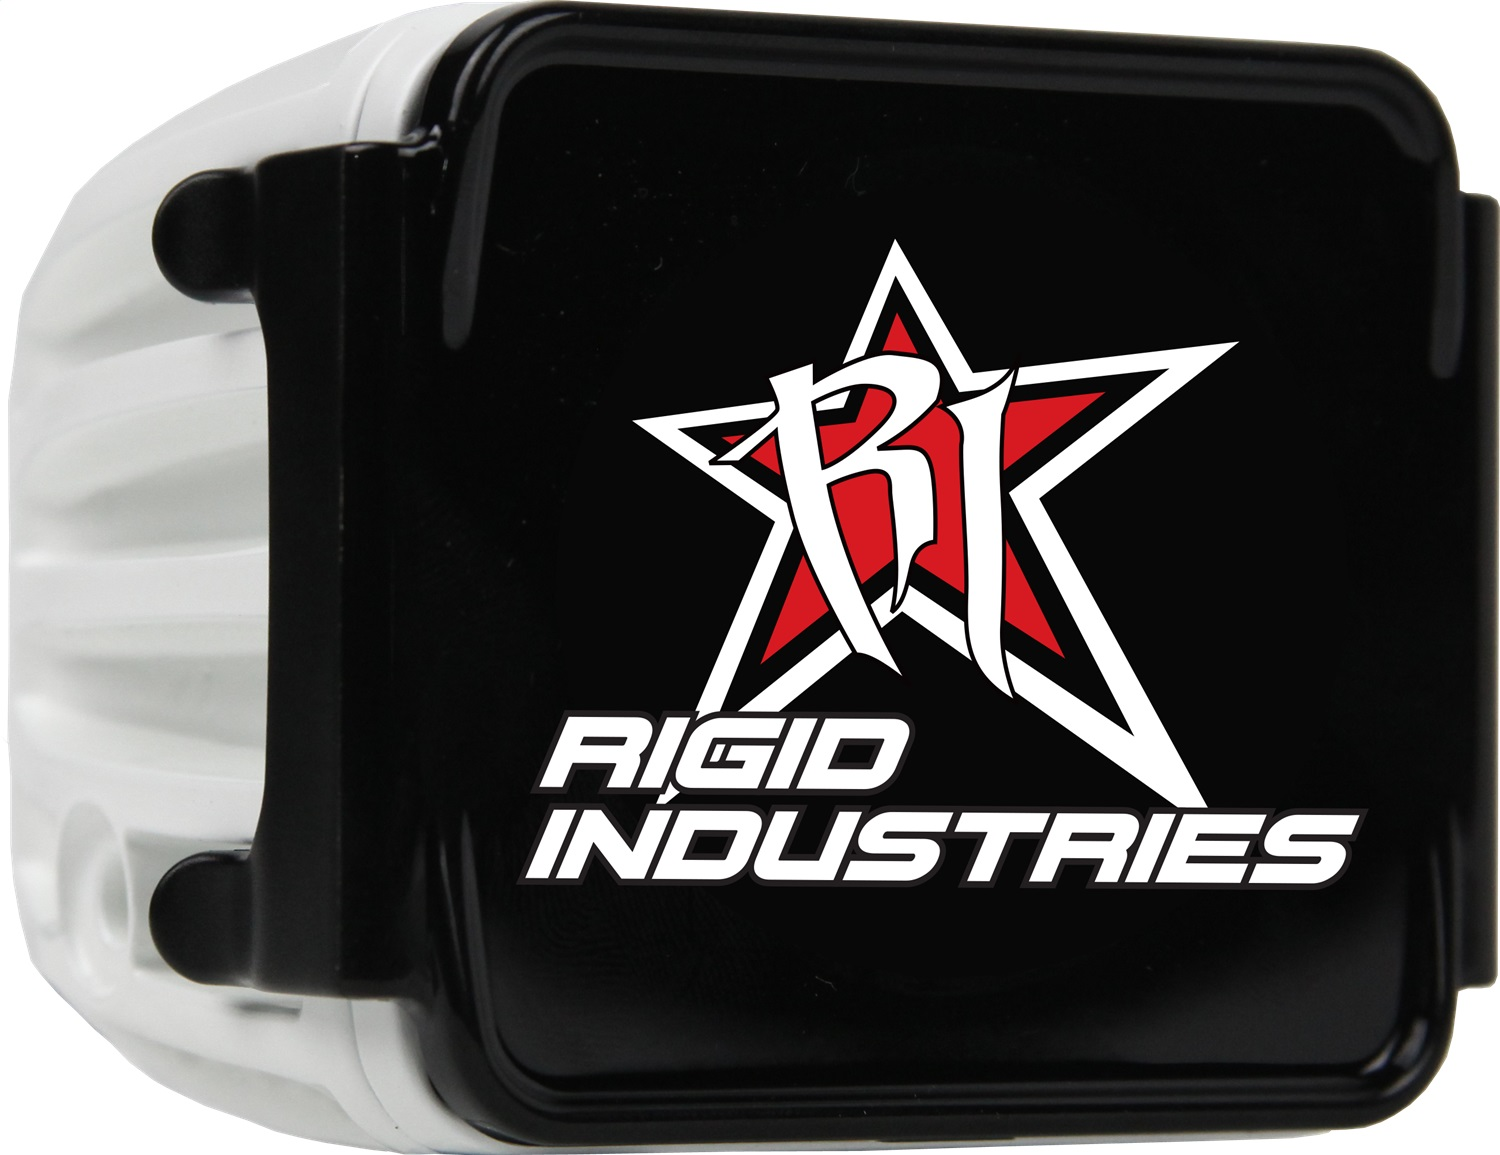 Rigid Industries 20191 Protective Polycarbonate Cover